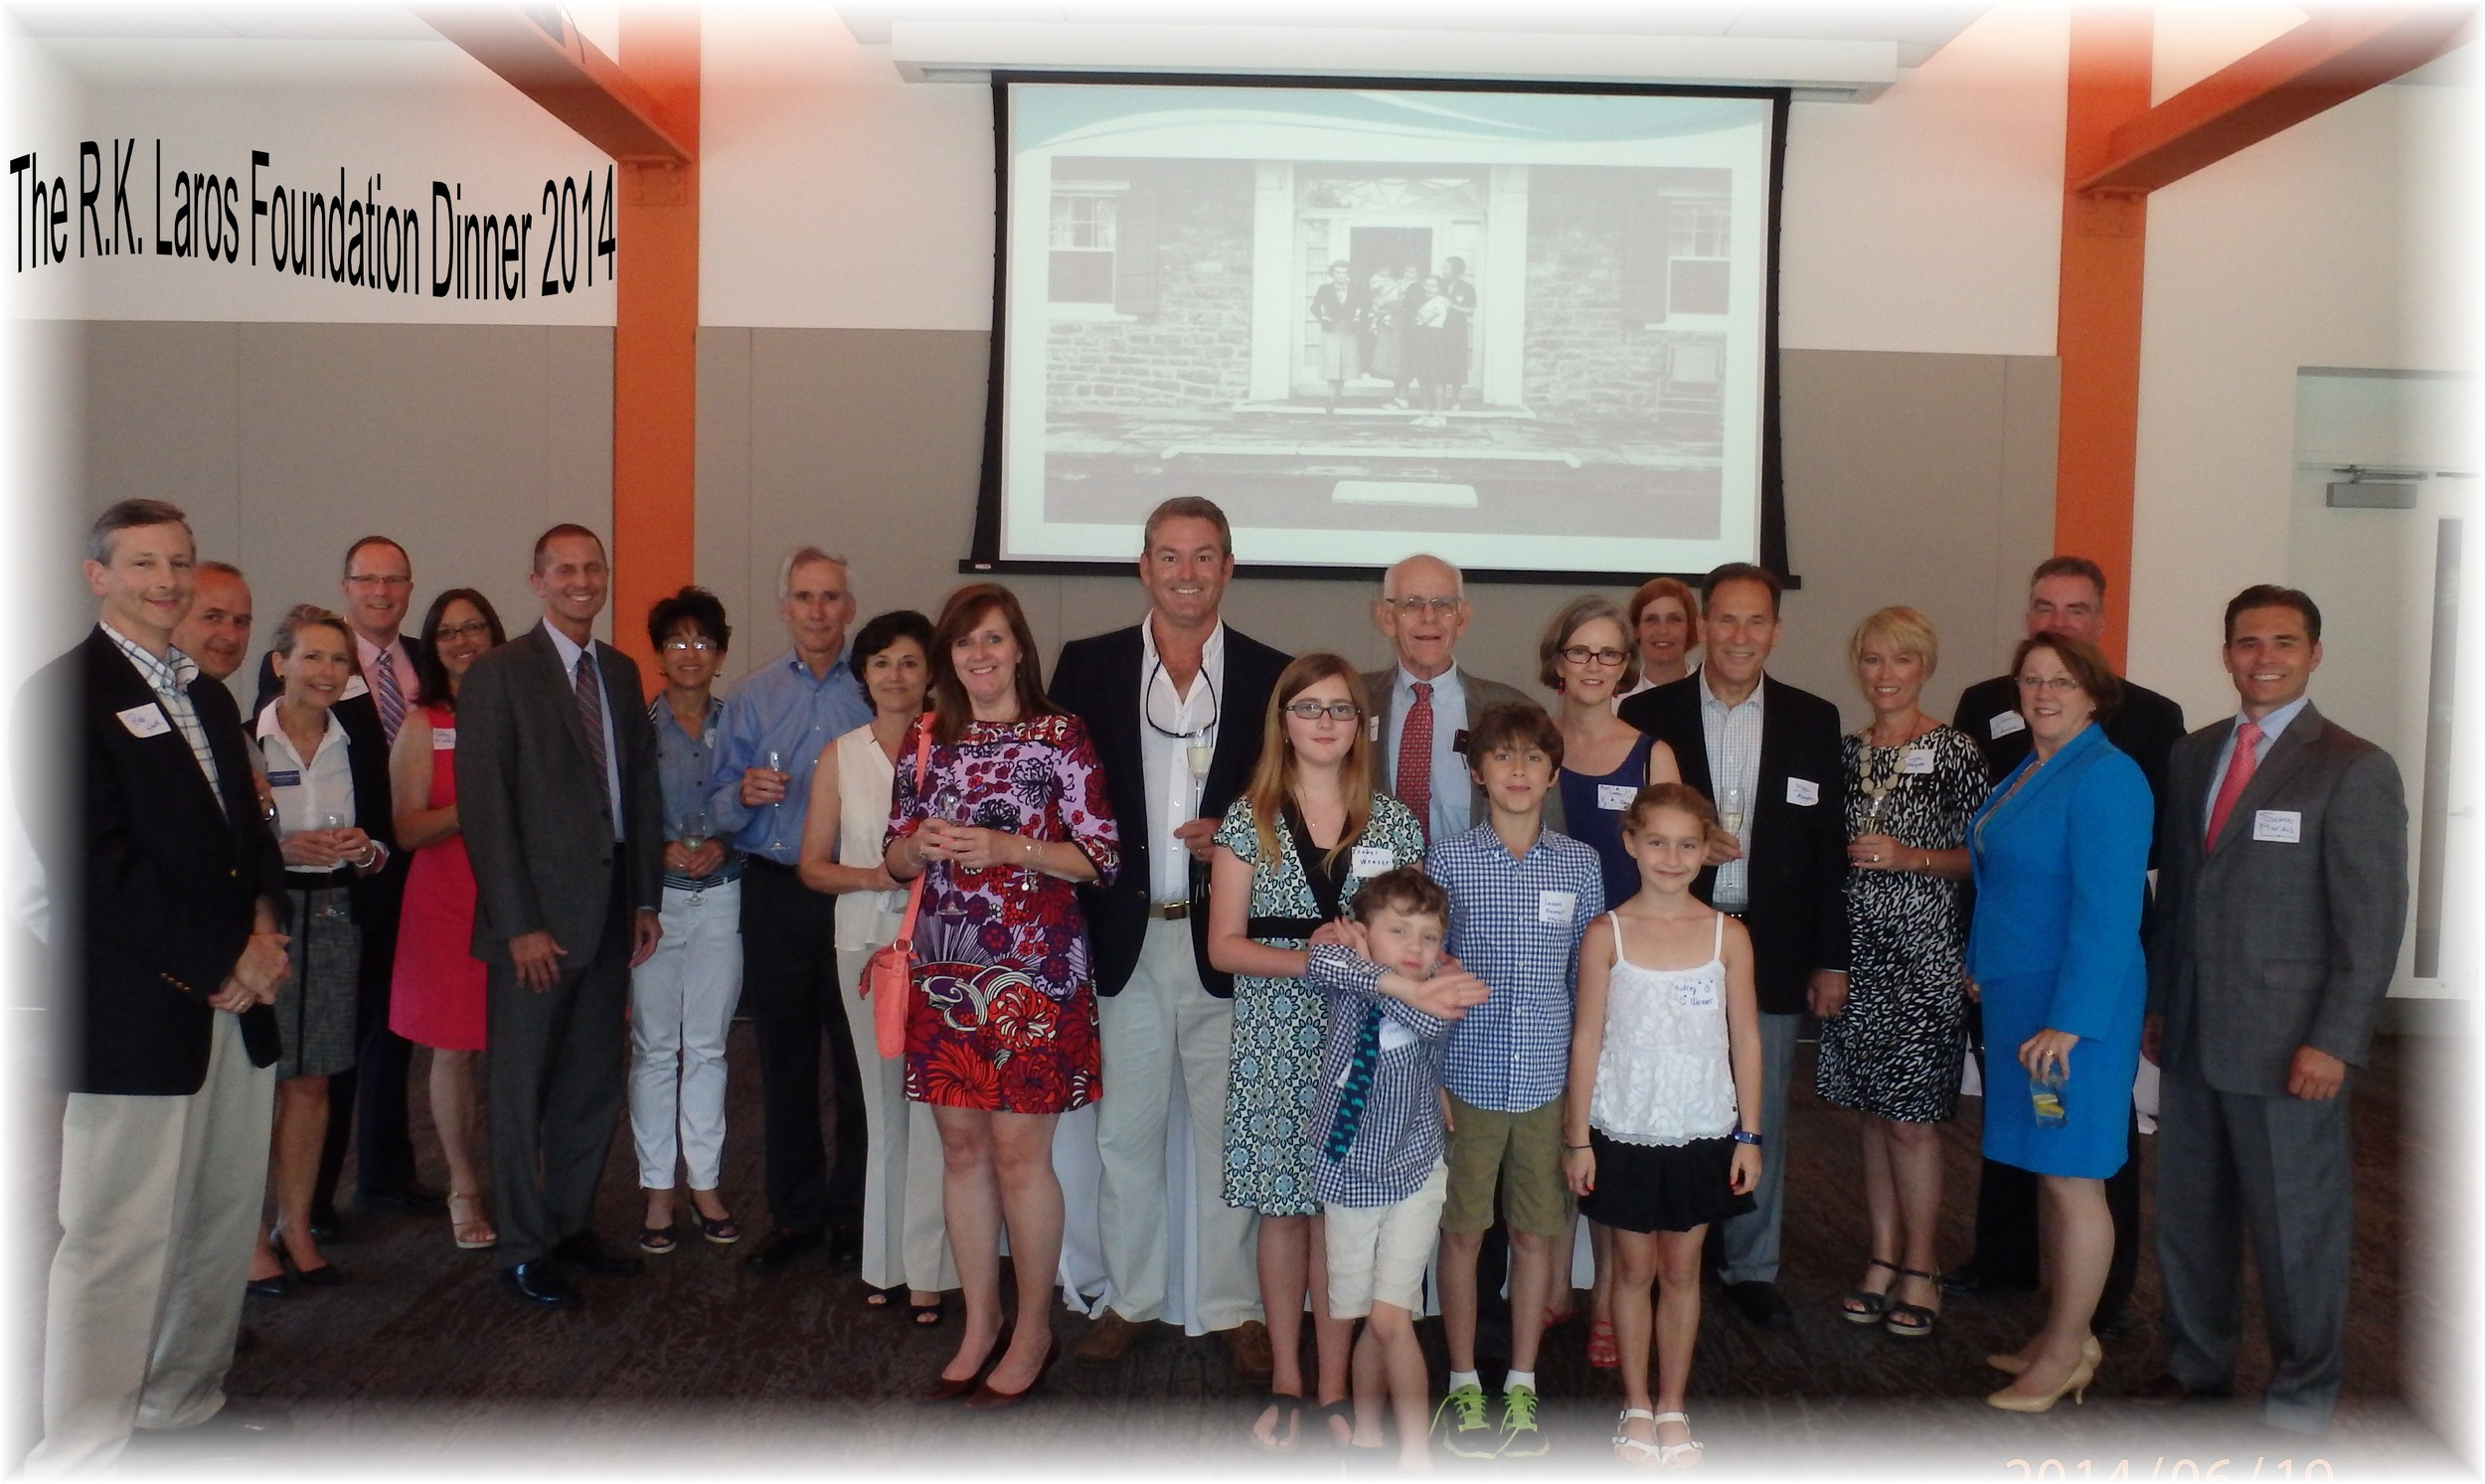 The R.K. Laros Board gathered in June 2014 for a Foundation dinner with three generations of Laros descendants, board members and their spouses and guests.